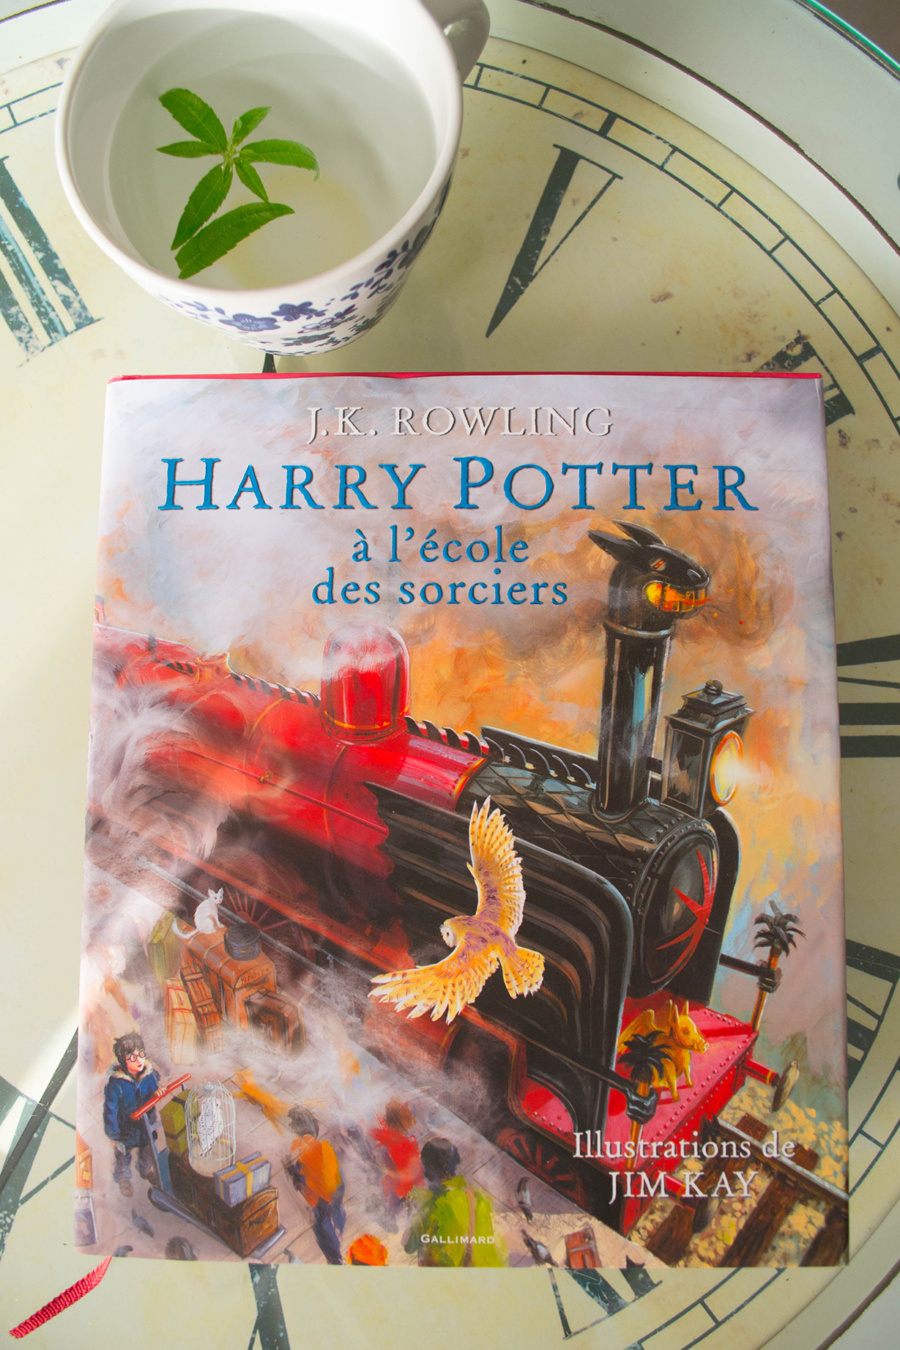 Harry Potter version illustrée